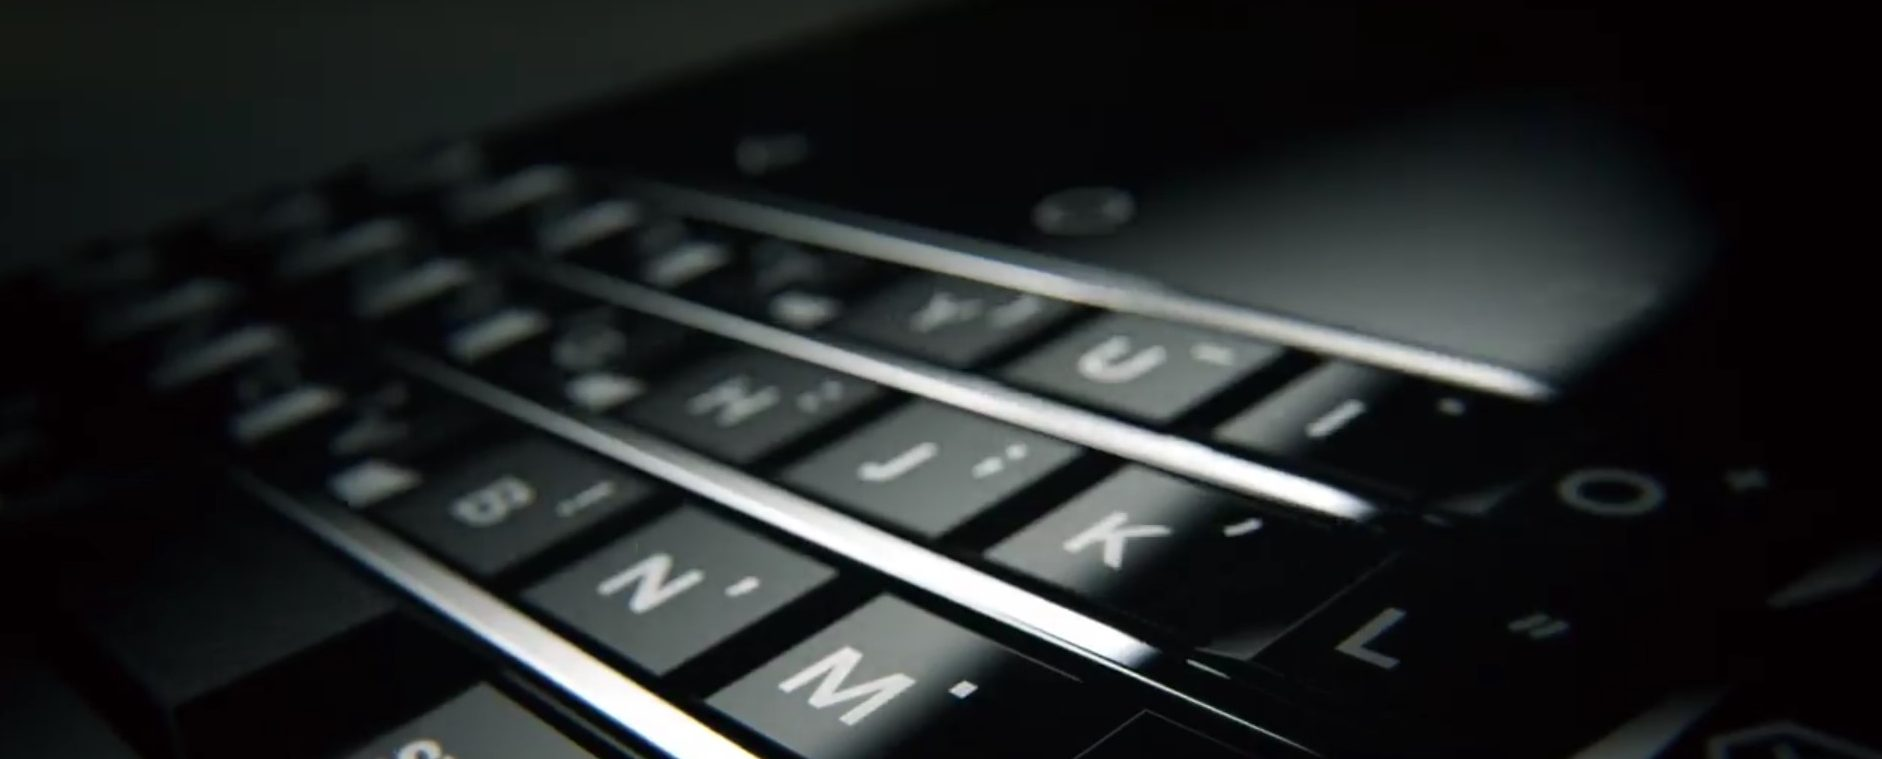 Created At 2017 01 05 0208 New Vario 125 Esp Cbs Titanium Black Solo Crncom Blackberry Smartphone Revealed Ces Has Qwerty Keyboard